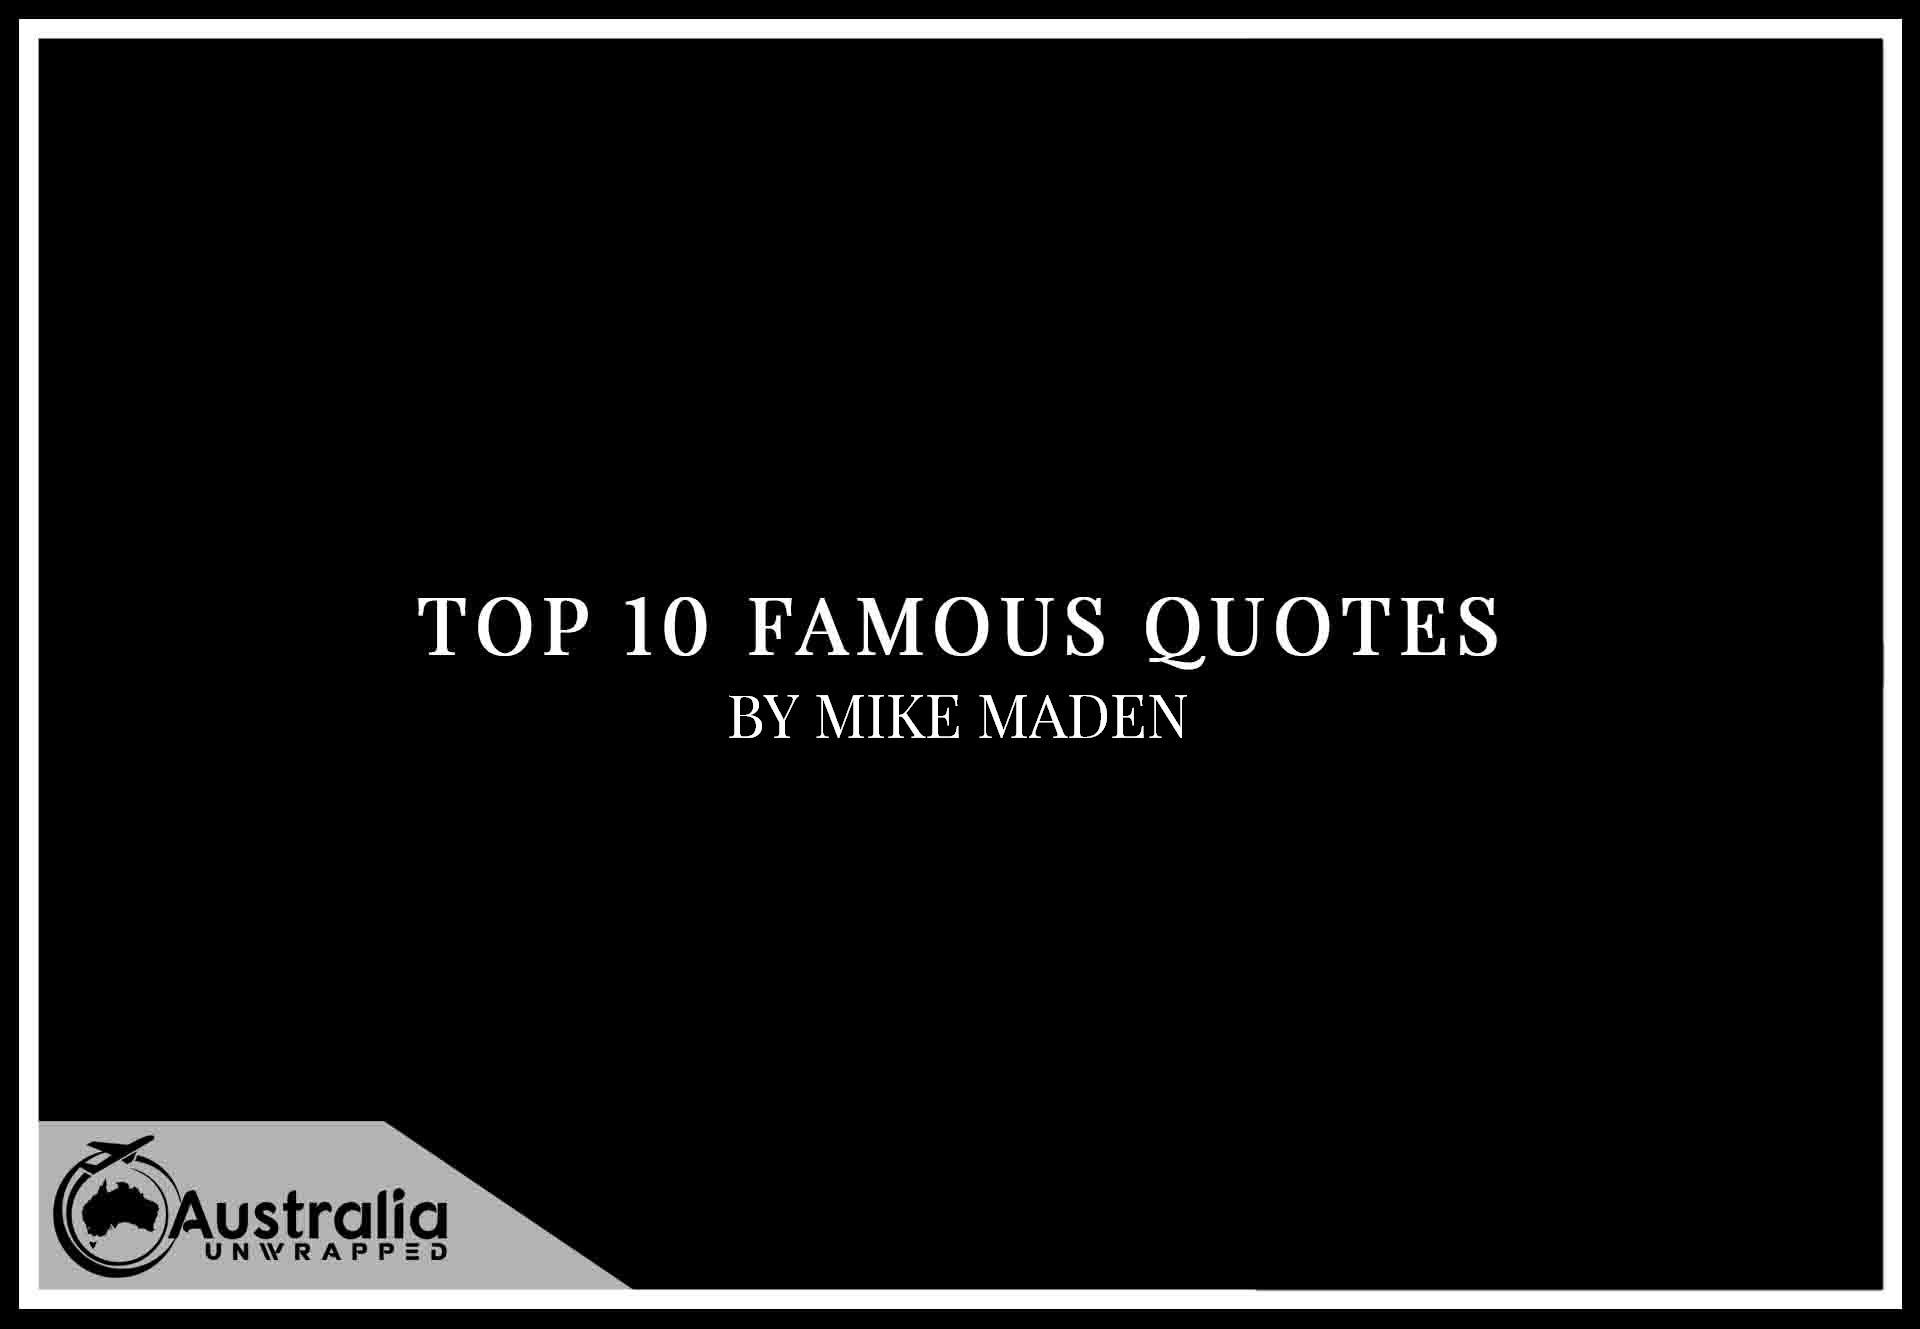 Top 10 Famous Quotes by Author Mike Maden